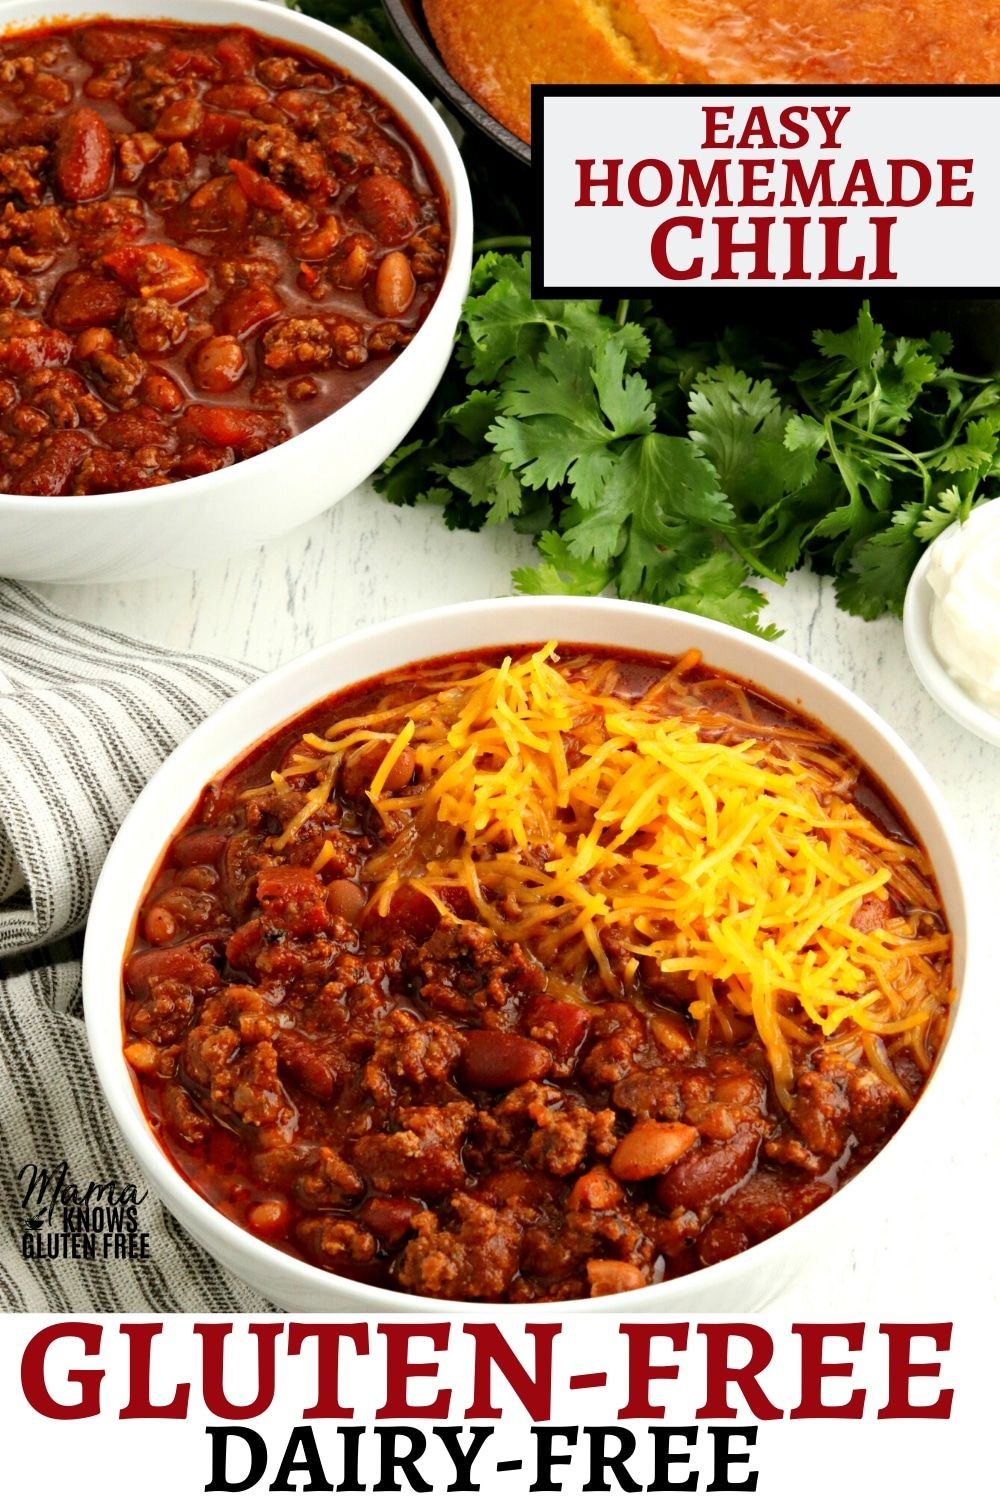 The Best Gluten Free Chili This Easy Chili Recipe Is Made With Ground Beef Beans And A Simple In 2020 Dairy Free Recipes Dinner Chili Recipe Easy Gluten Free Chili